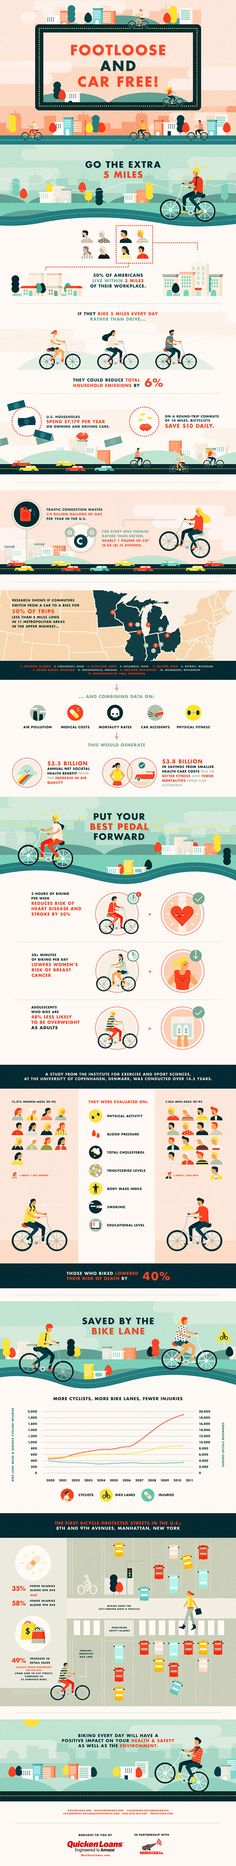 Footloose and Car Free! How Biking Can Improve Your Health and the Environment Infographic Information Design, Information Graphics, Web Design, Graphic Design, Slide Design, Flat Design, Illustrator, Free Infographic, Health Infographics